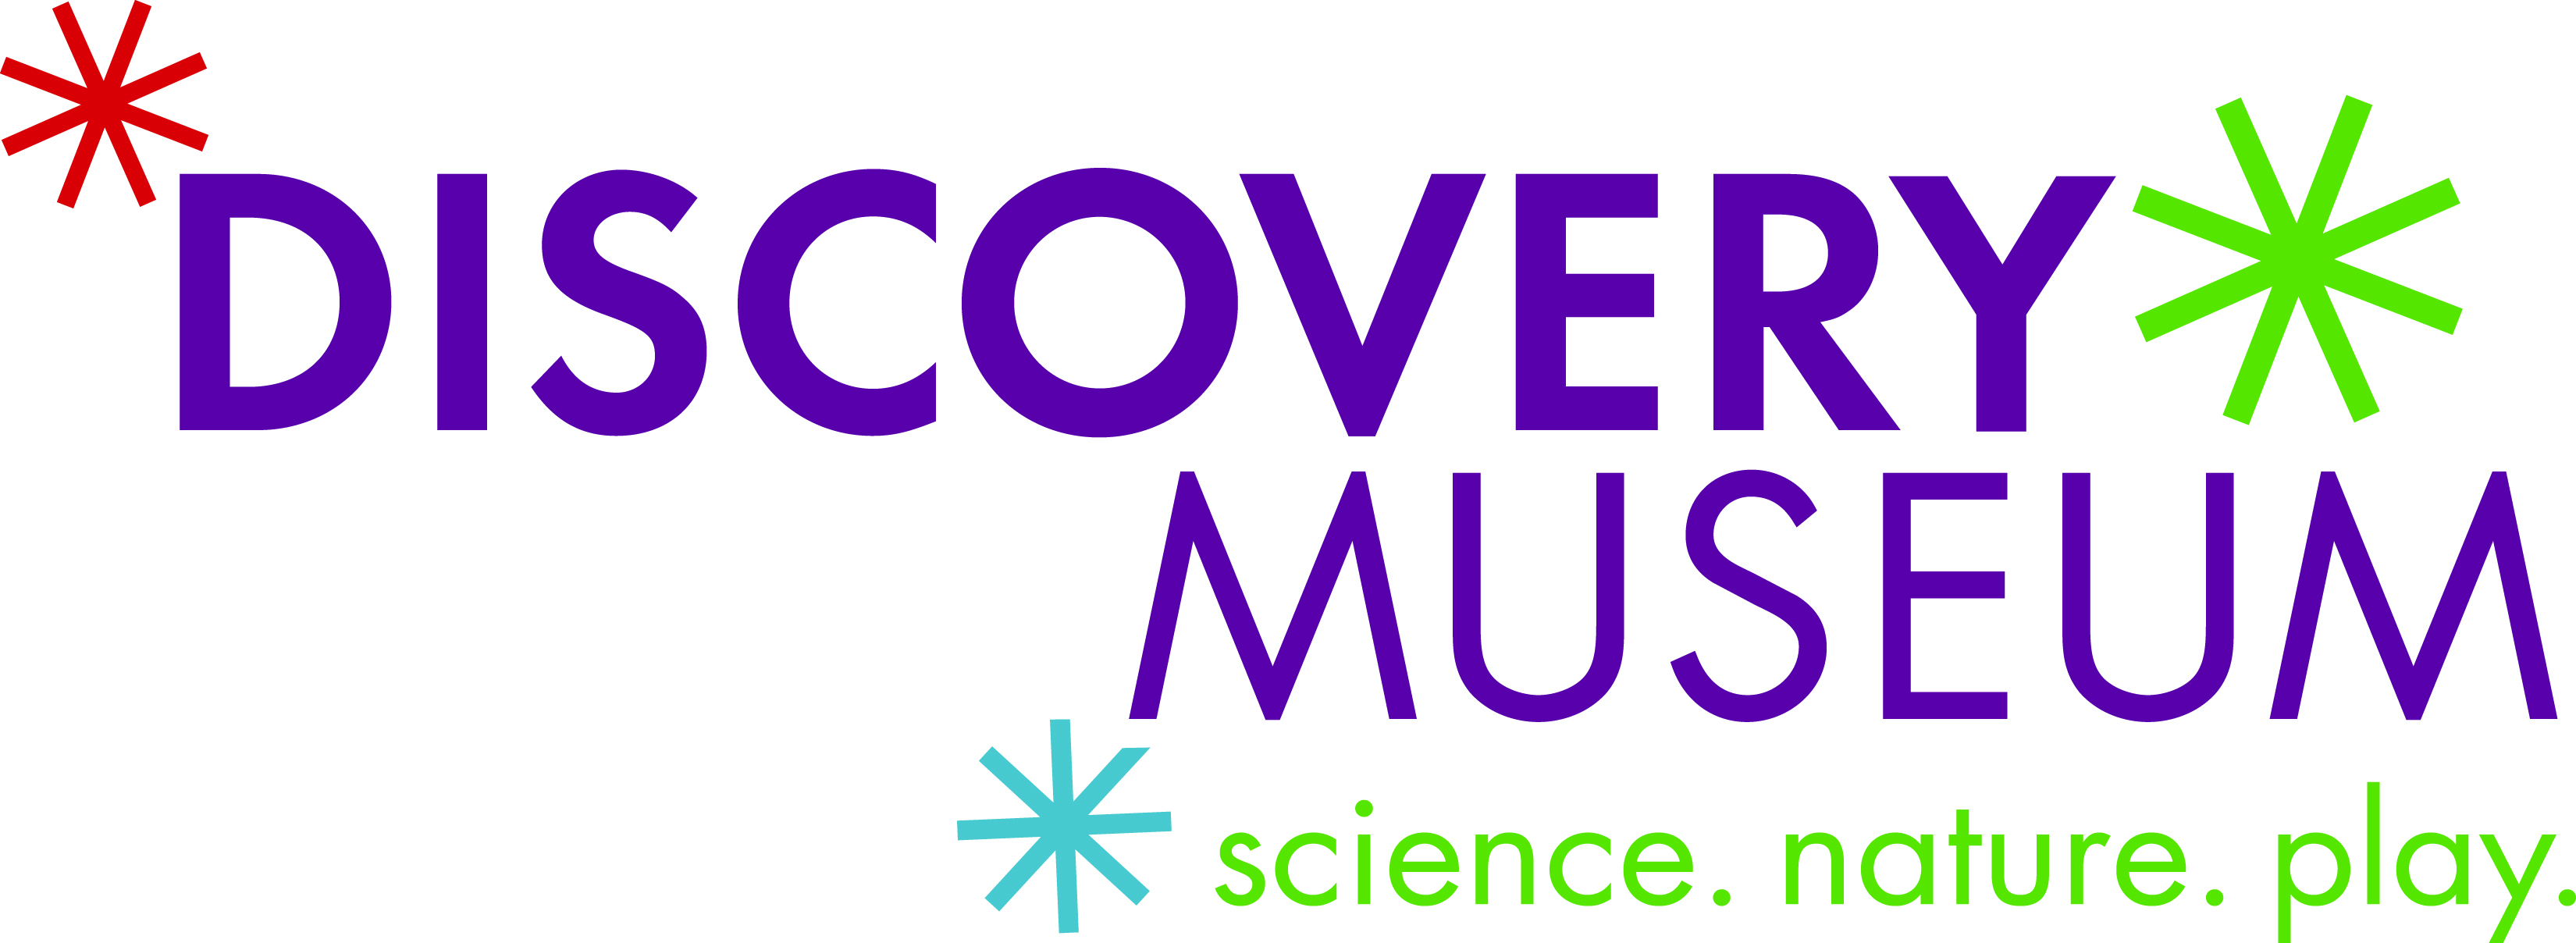 Discovery Museums logo